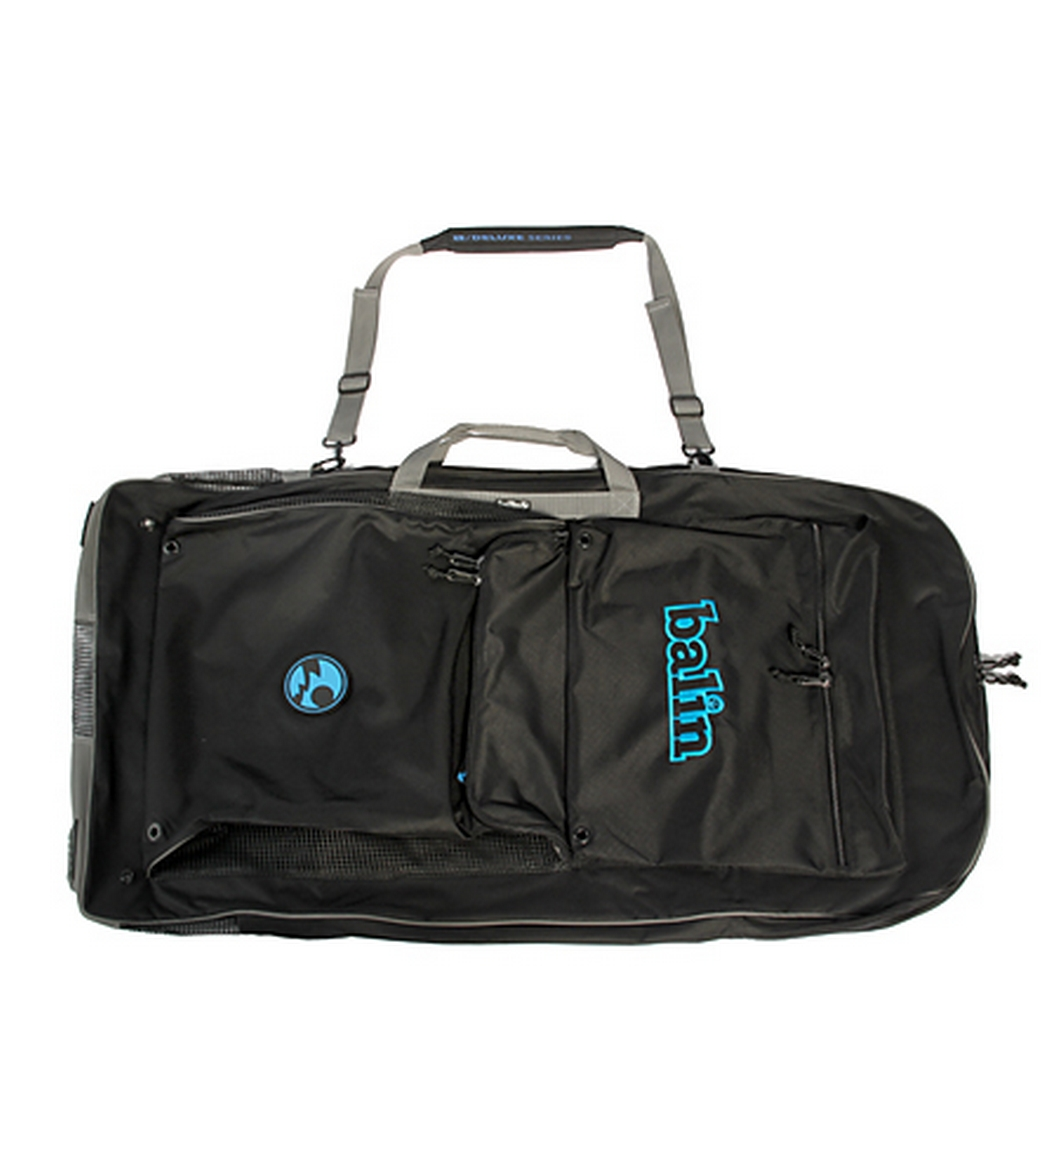 4dc9d5aac526 Blocksurf Balin Bodyboard Bag at SwimOutlet.com - Free Shipping